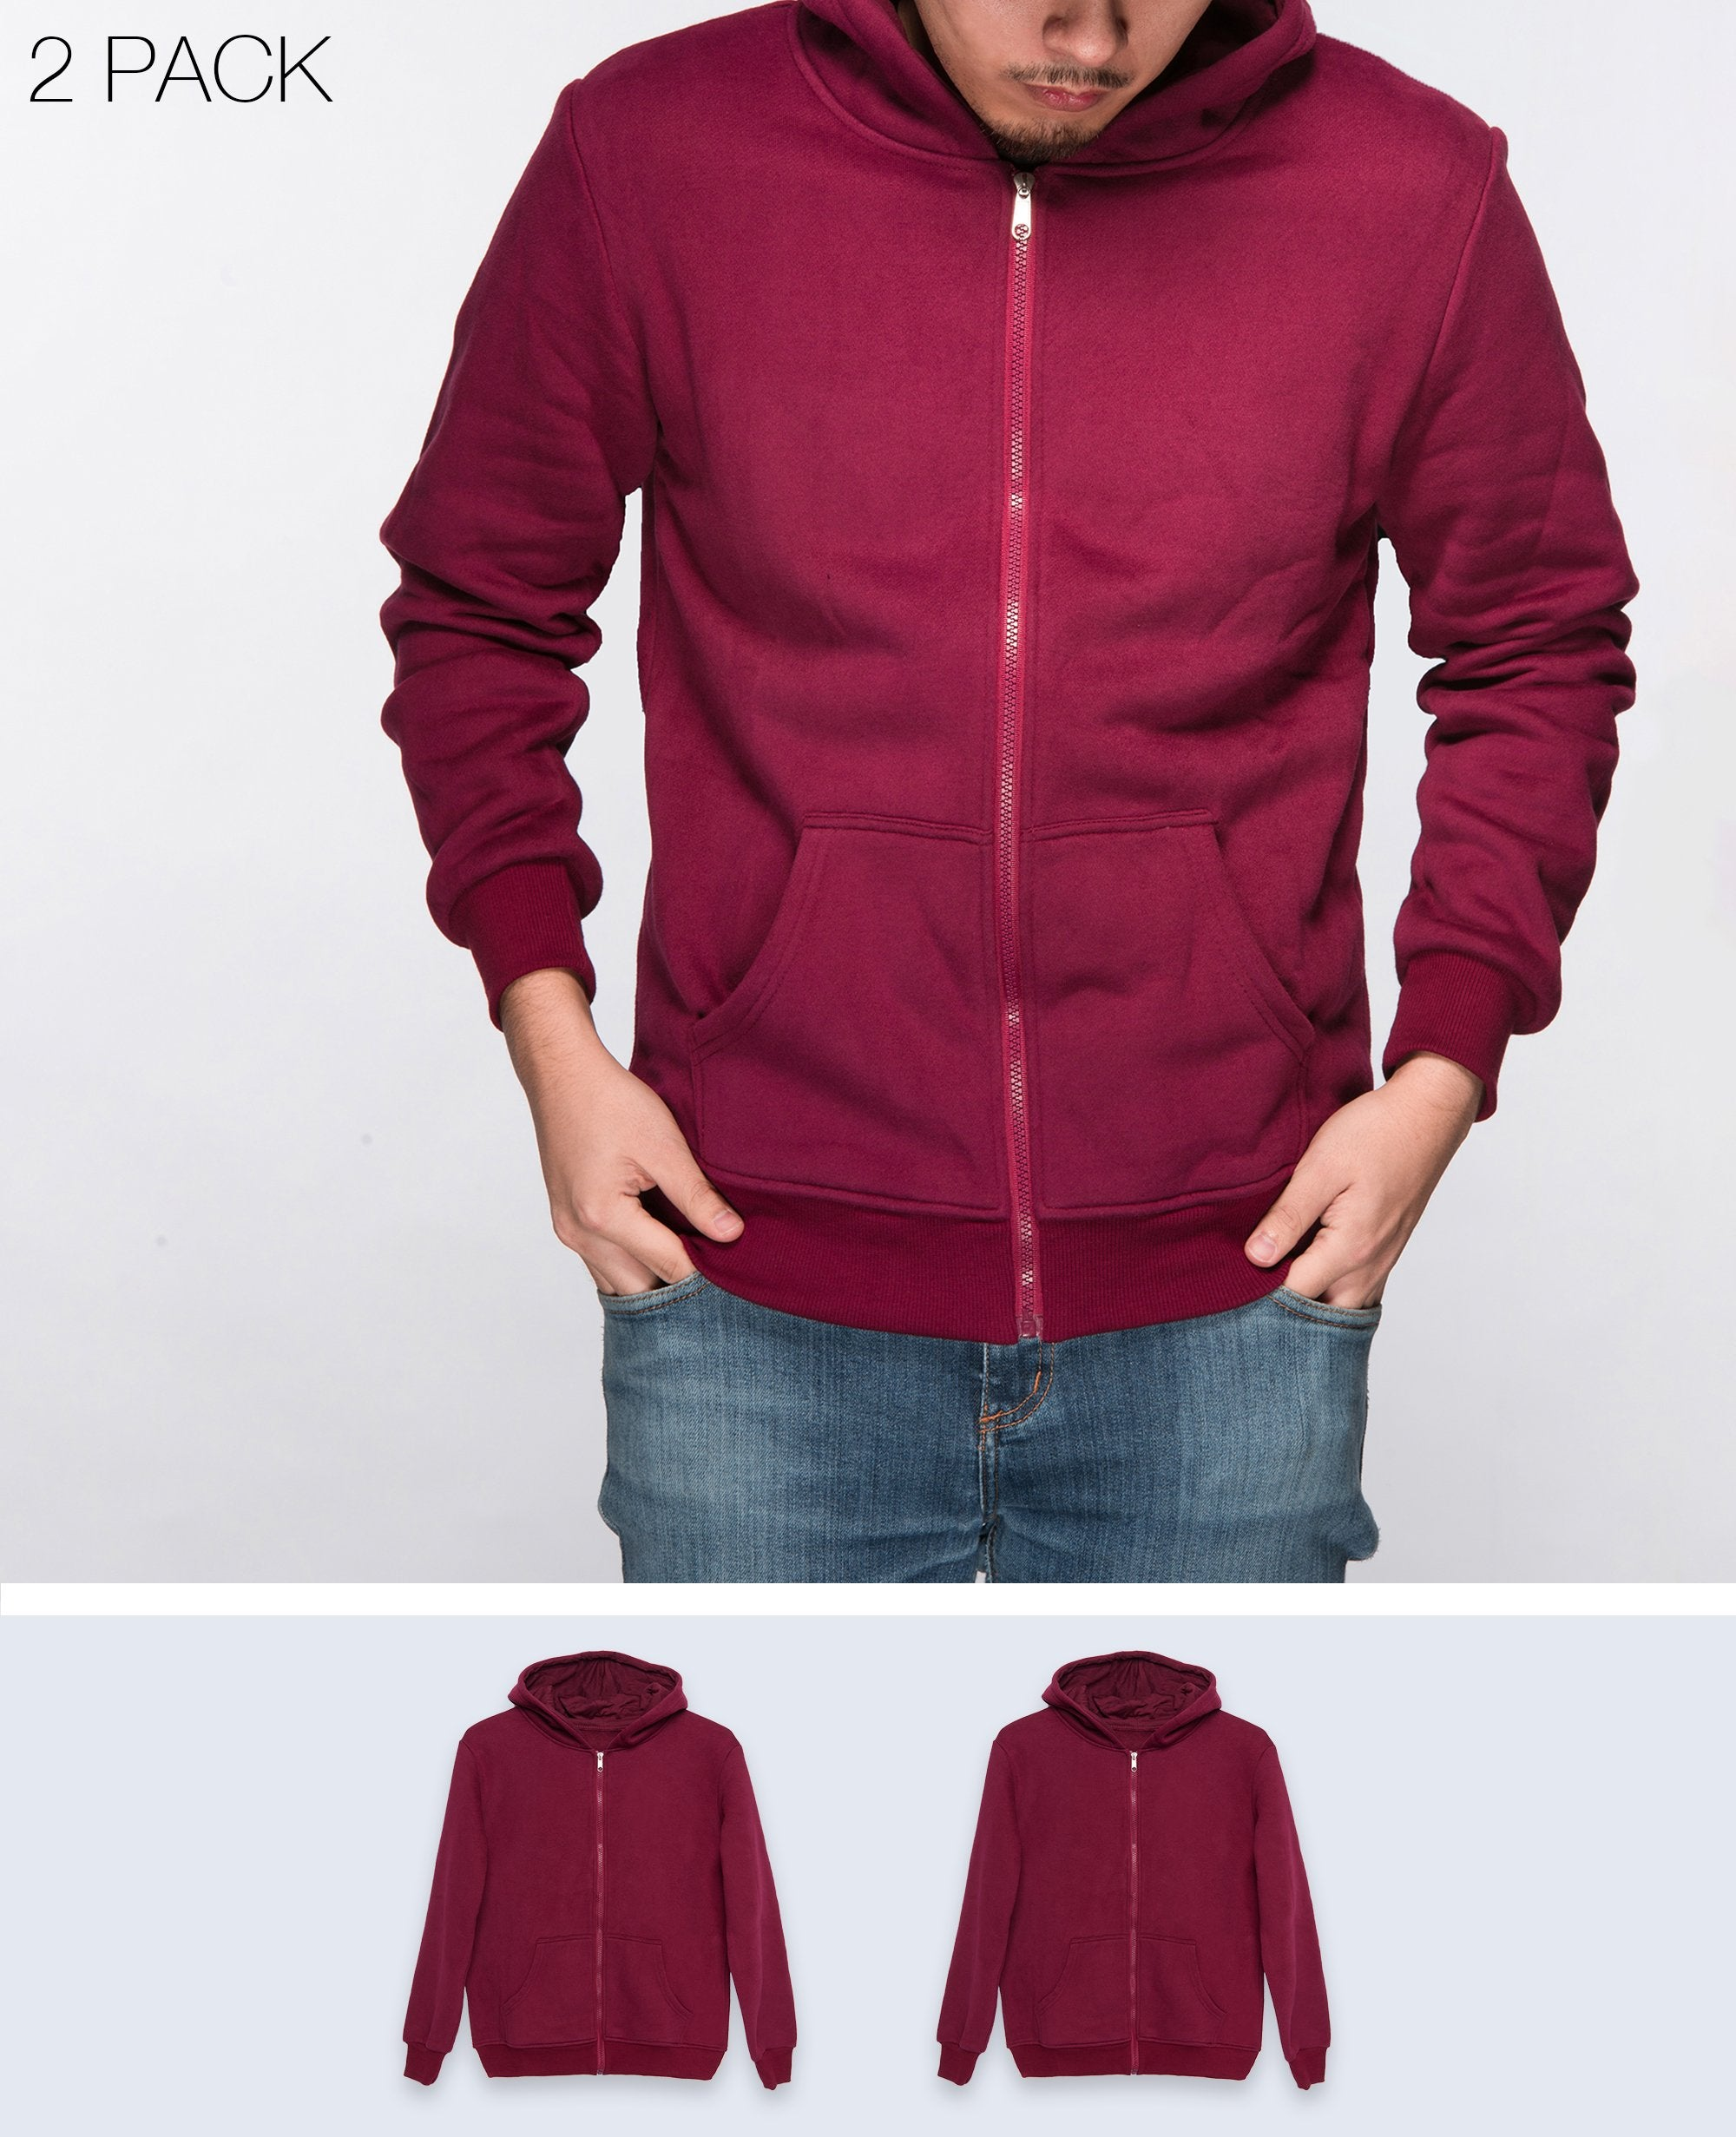 Unisex Basic Hoodies in Maroon 2 pack - Hoodies - BRANMA - BRANMA